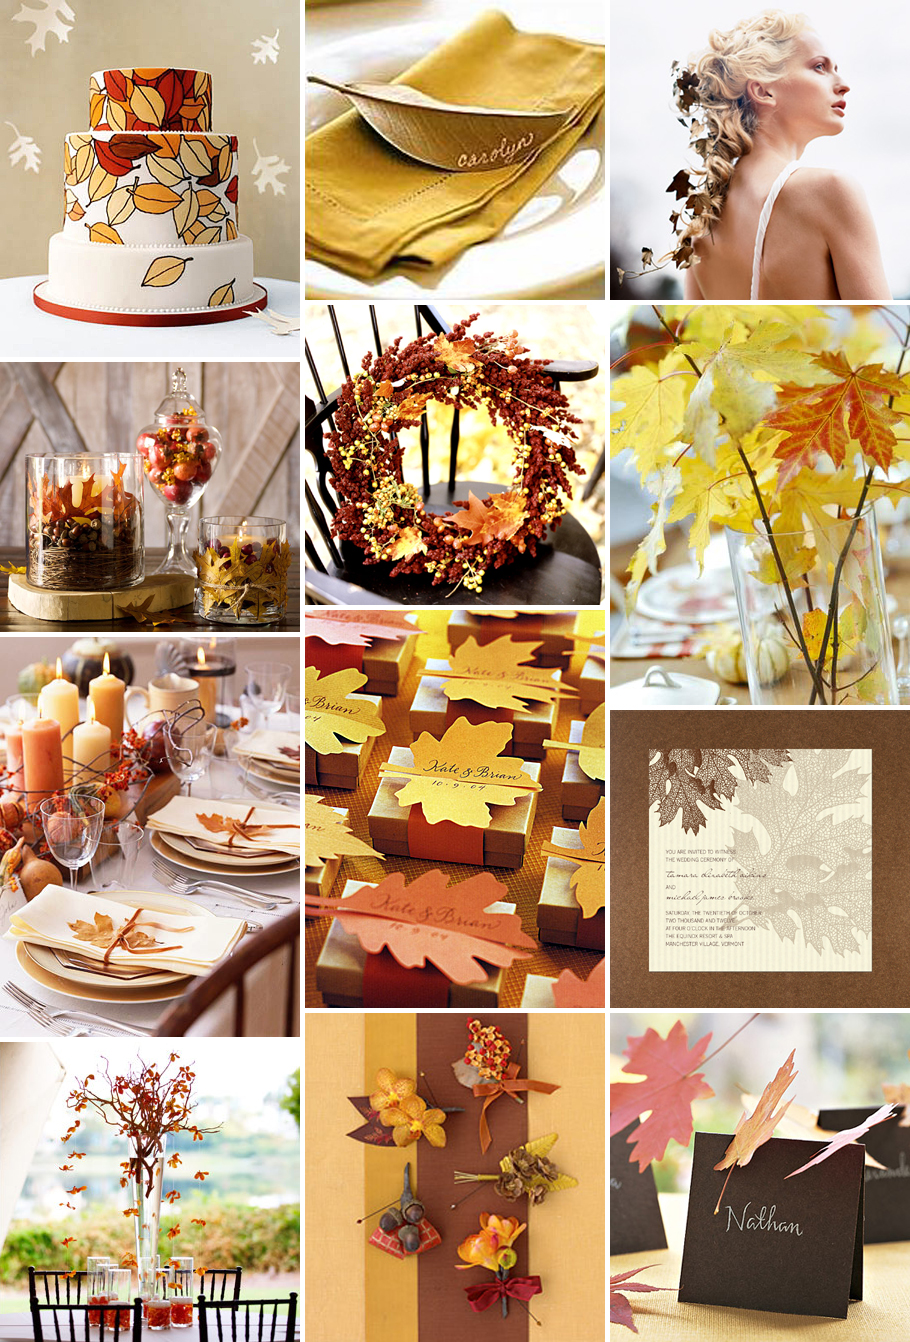 http://www.wedshare.com/blog/wp-content/uploads/2009/11/fall-leaves-wedding-lg.jpg